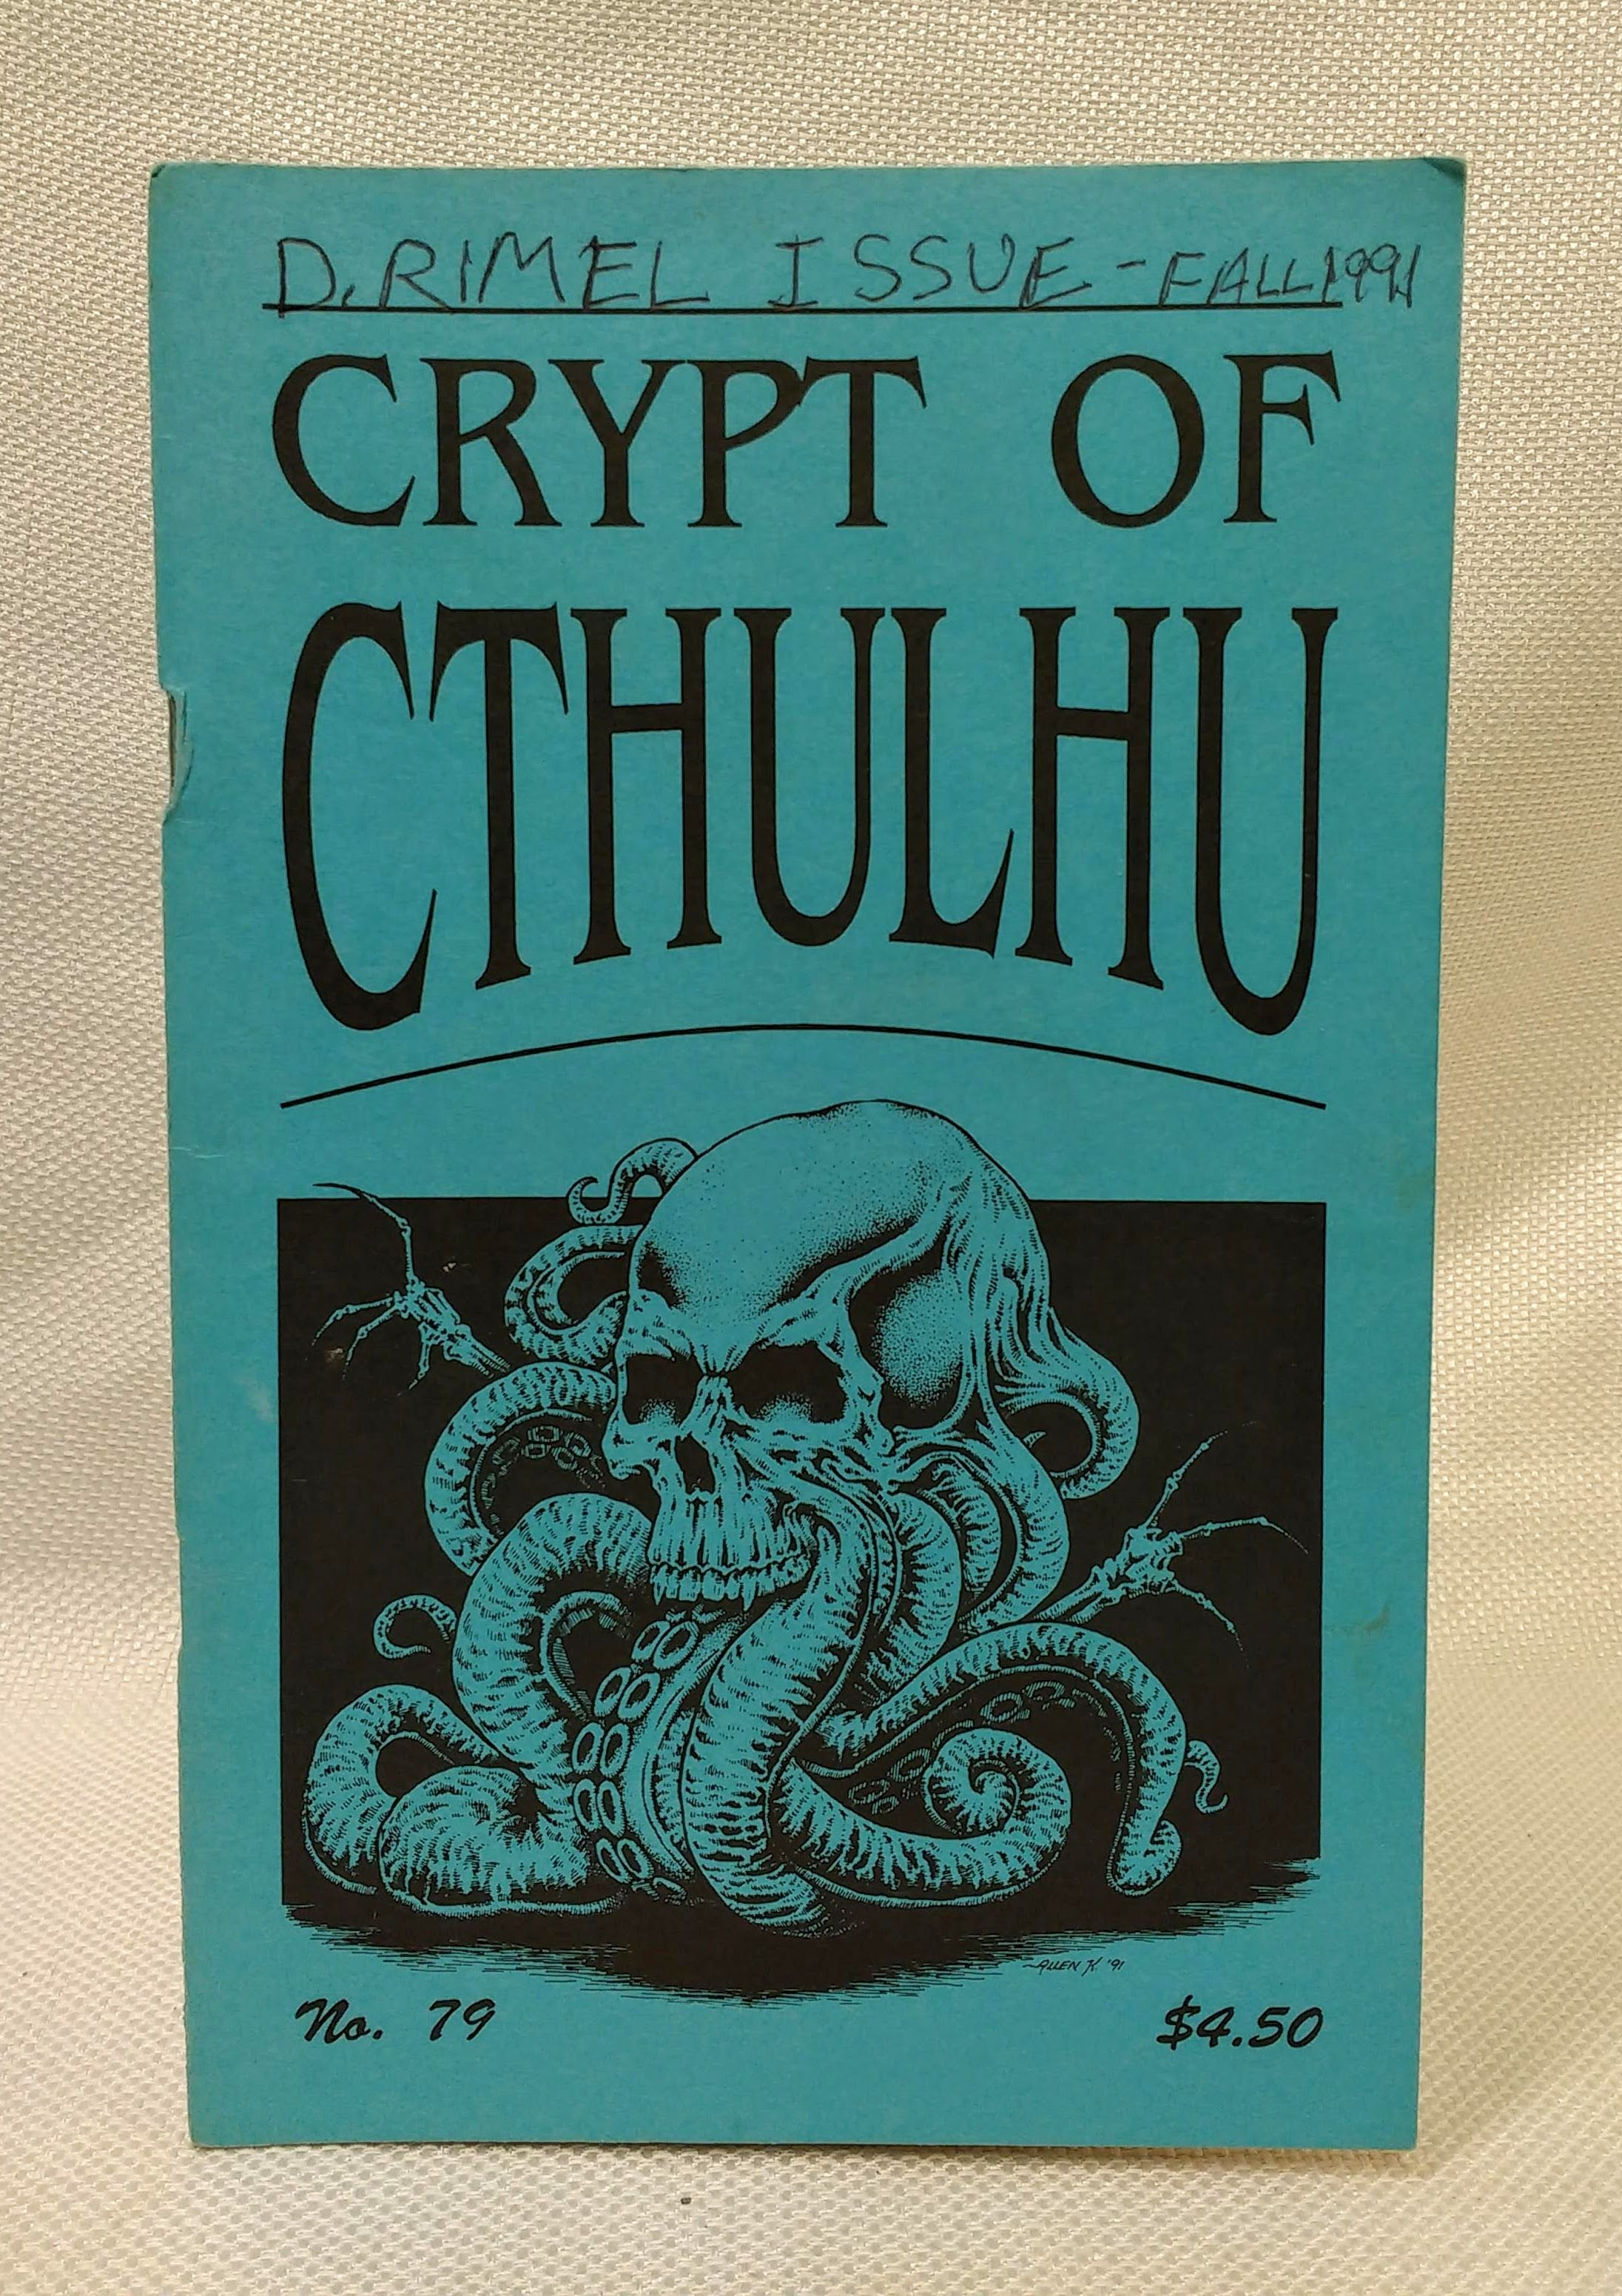 Crypt of Cthulu; A Pulp Thriller and Theological Journal: #79 (Hallowmas 1991), Price, Robert M. [Editor]